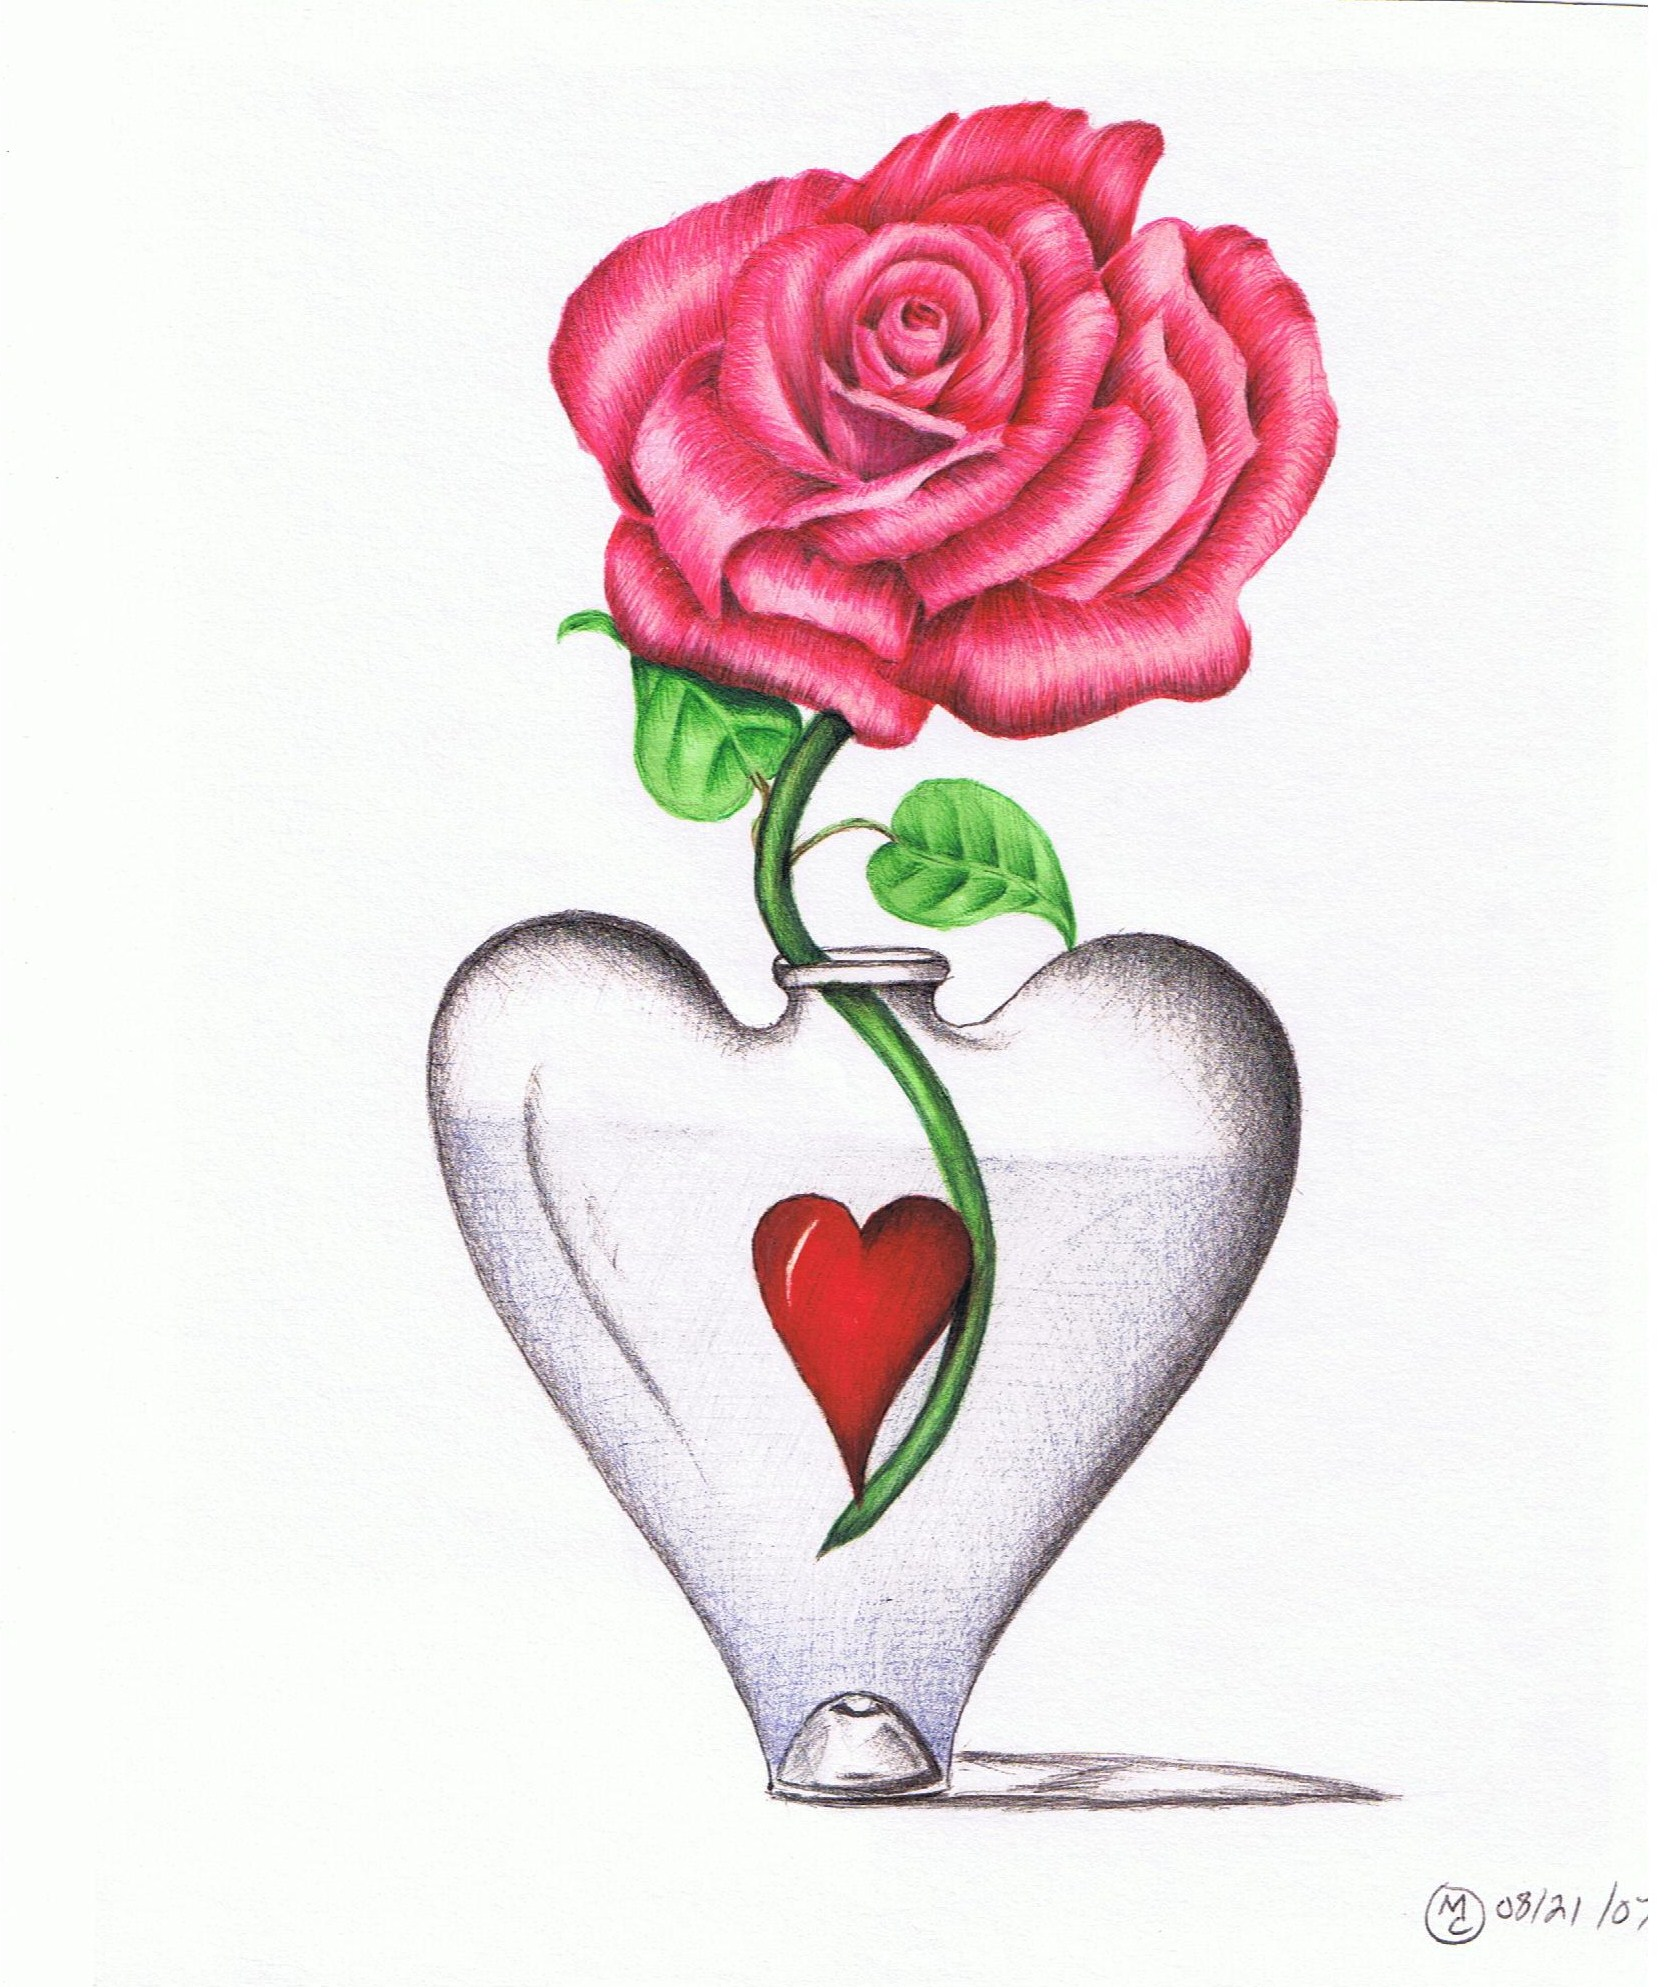 Rose in a heart vase michaelcameron foundmyself rose in a heart vase floridaeventfo Choice Image